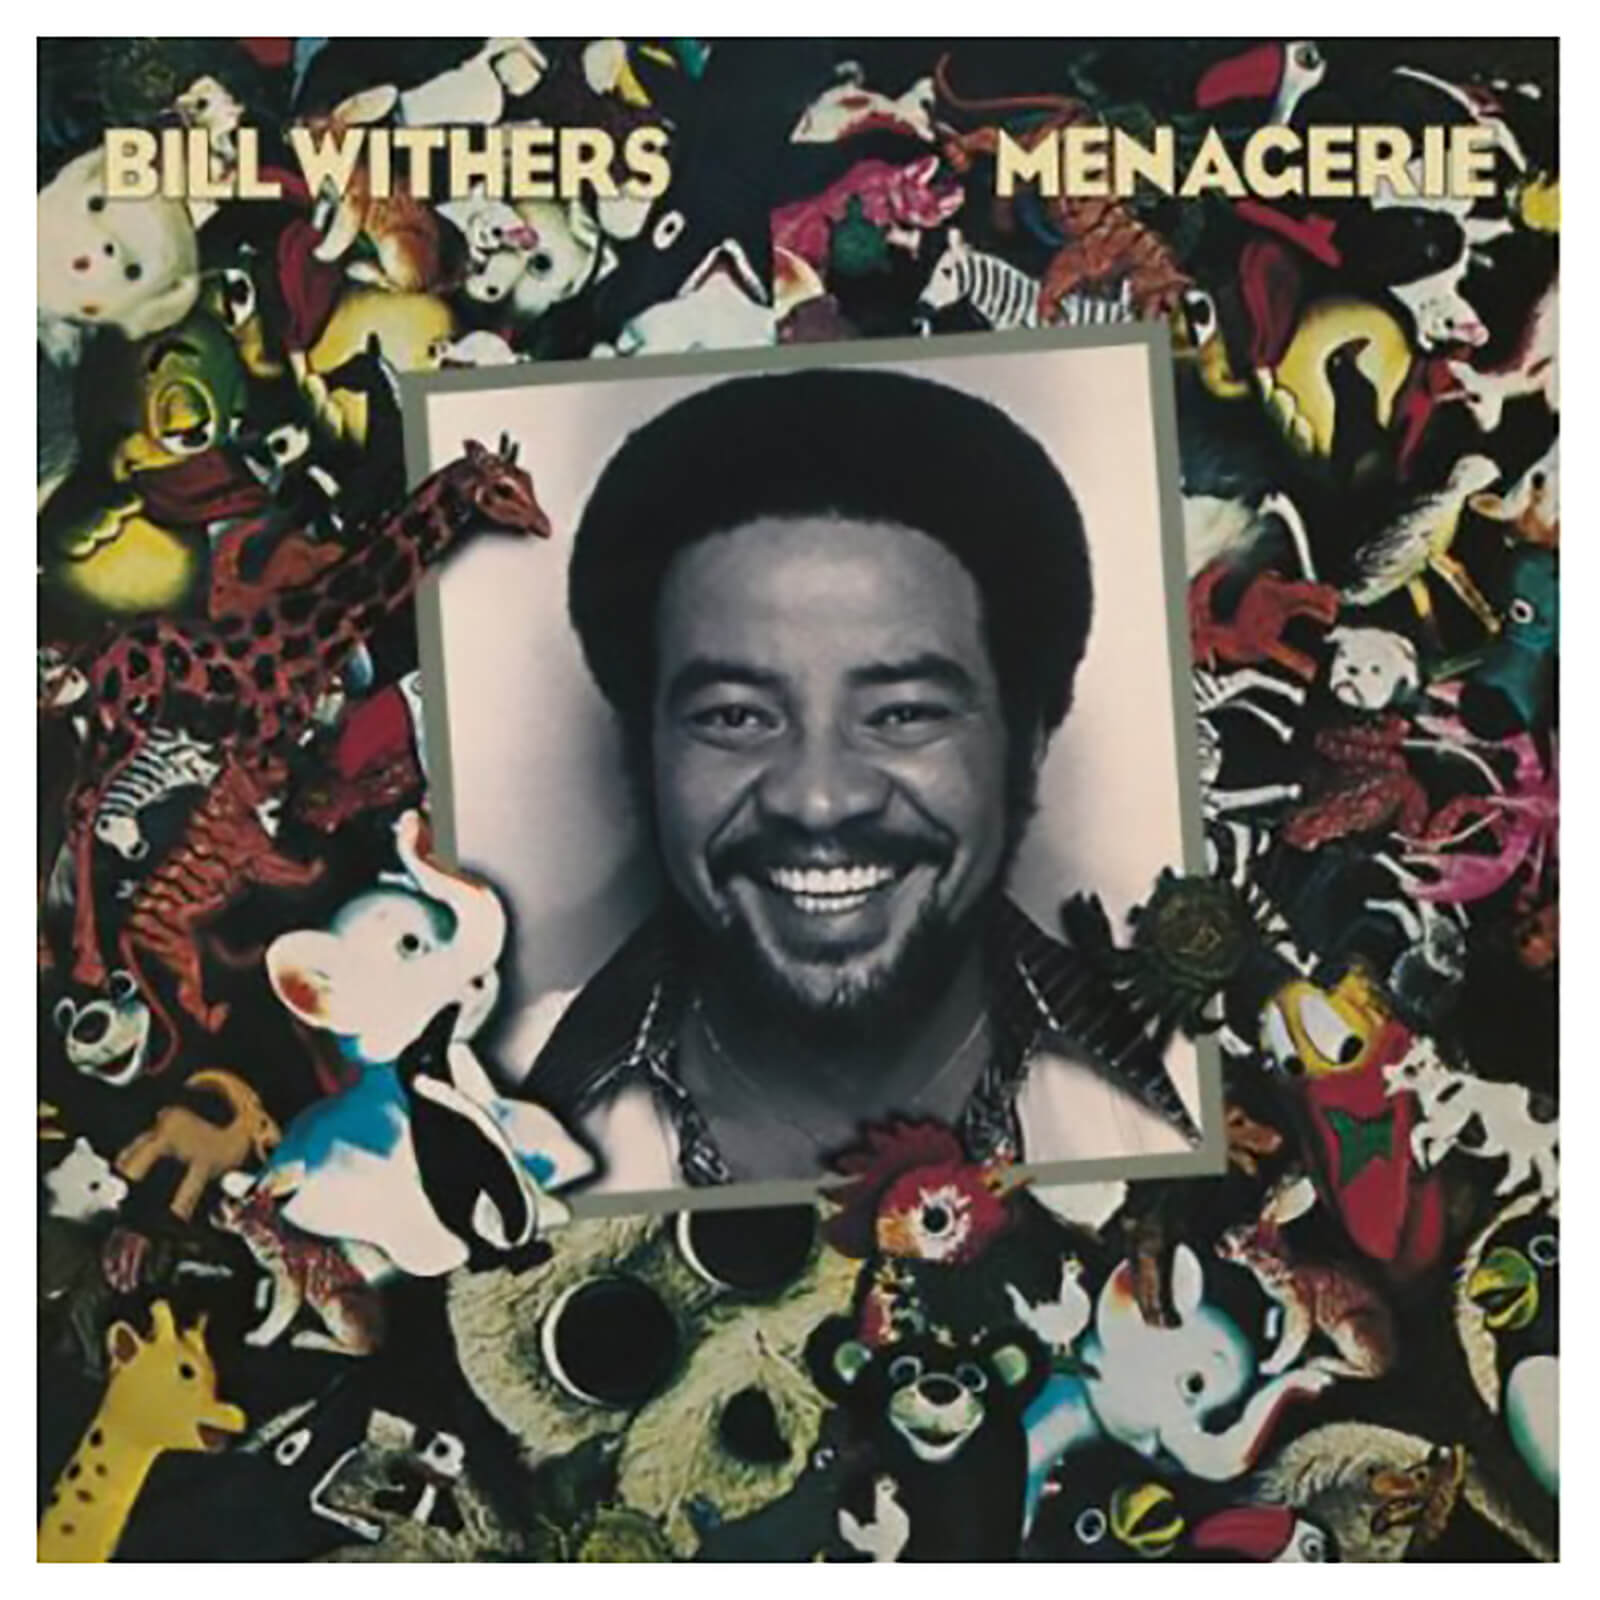 Bill Withers - Menagerie - Vinyl